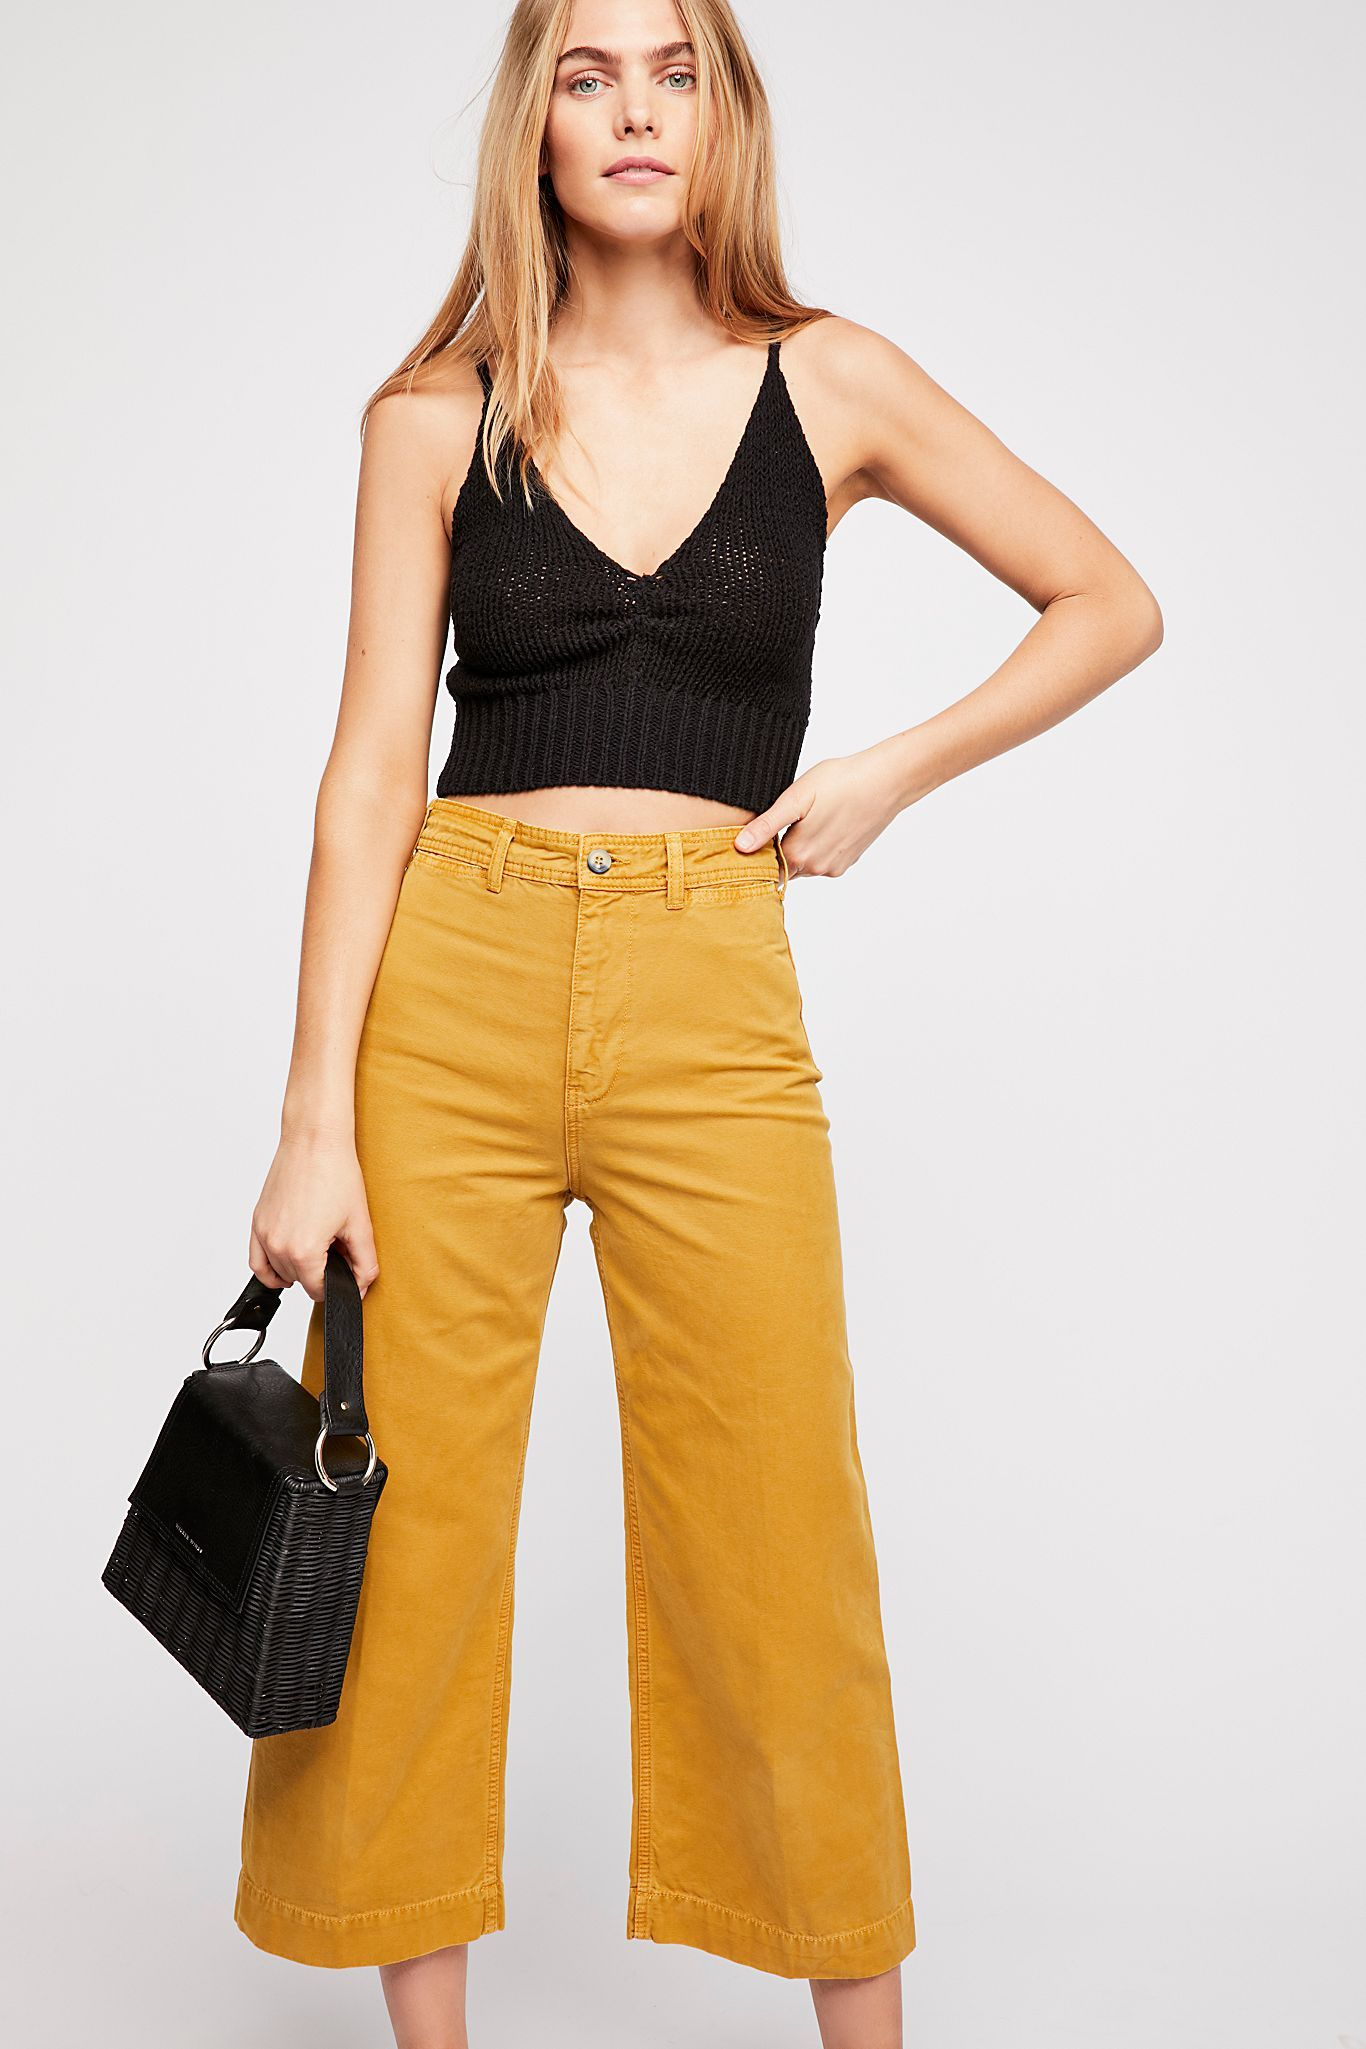 Patti Pant in 2020 Pants, Clothes, Clothes for women